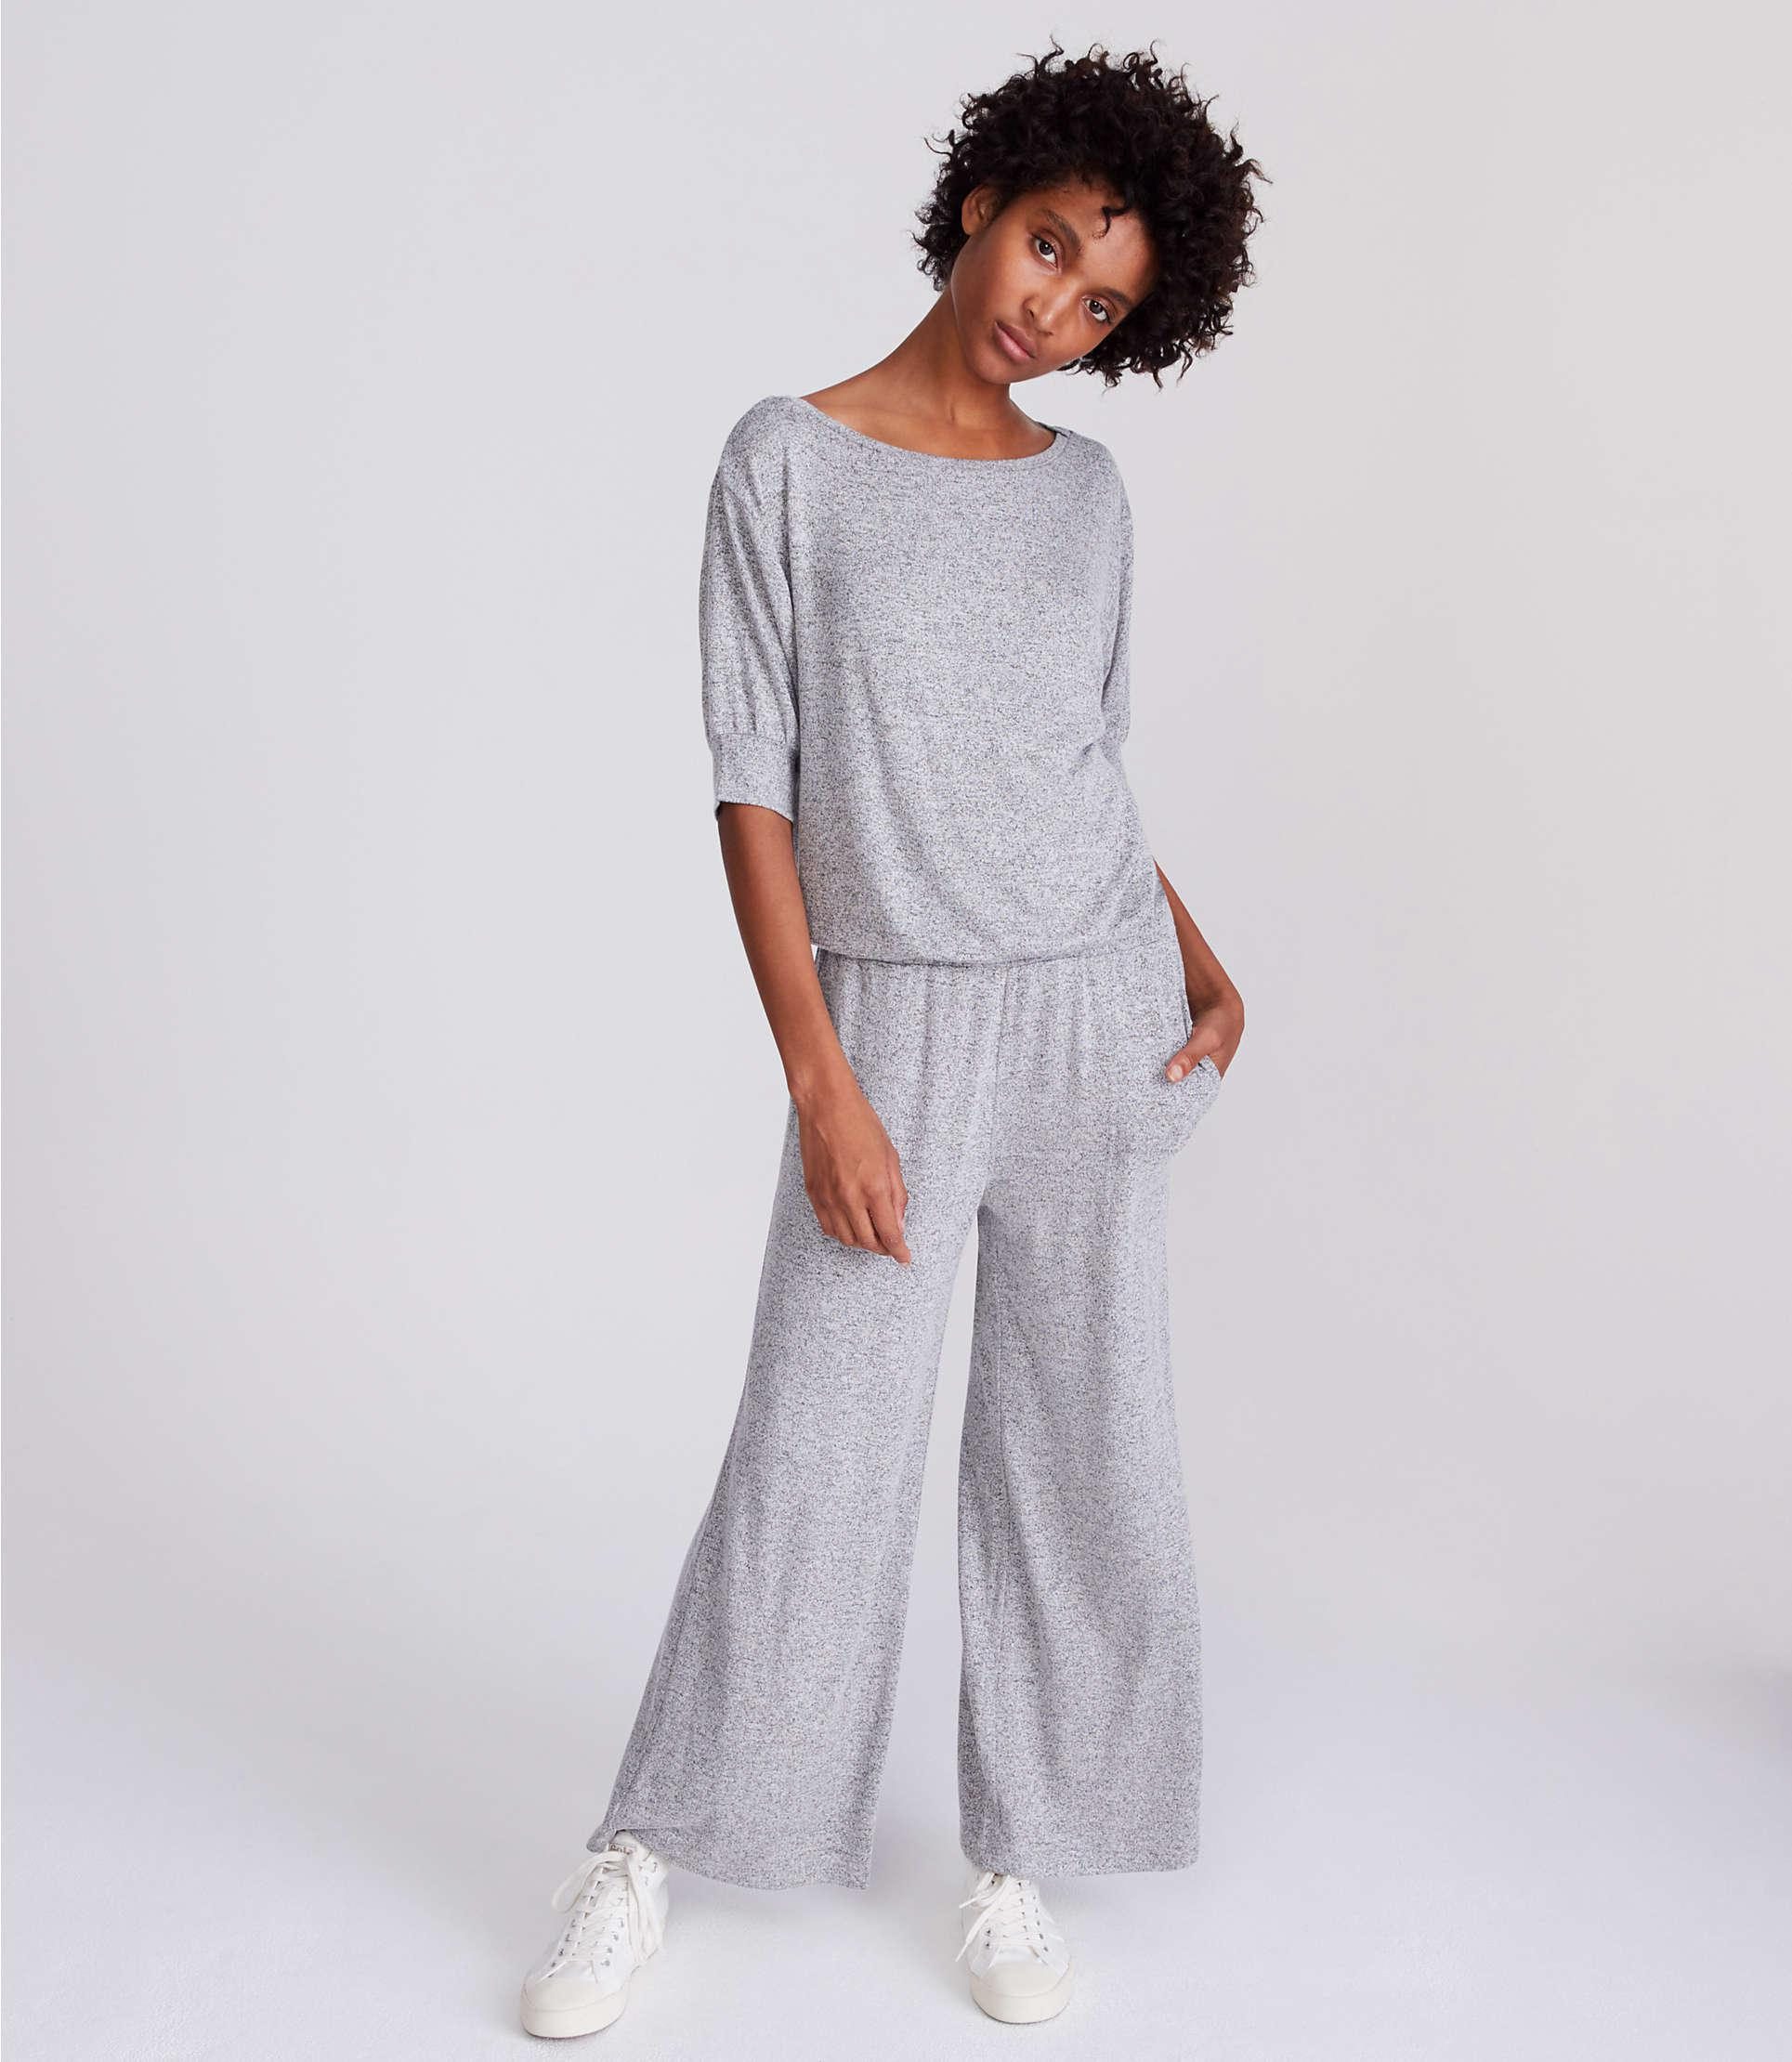 7c95fa29a7f Lyst - LOFT Lou   Grey Tucked Jumpsuit in Gray